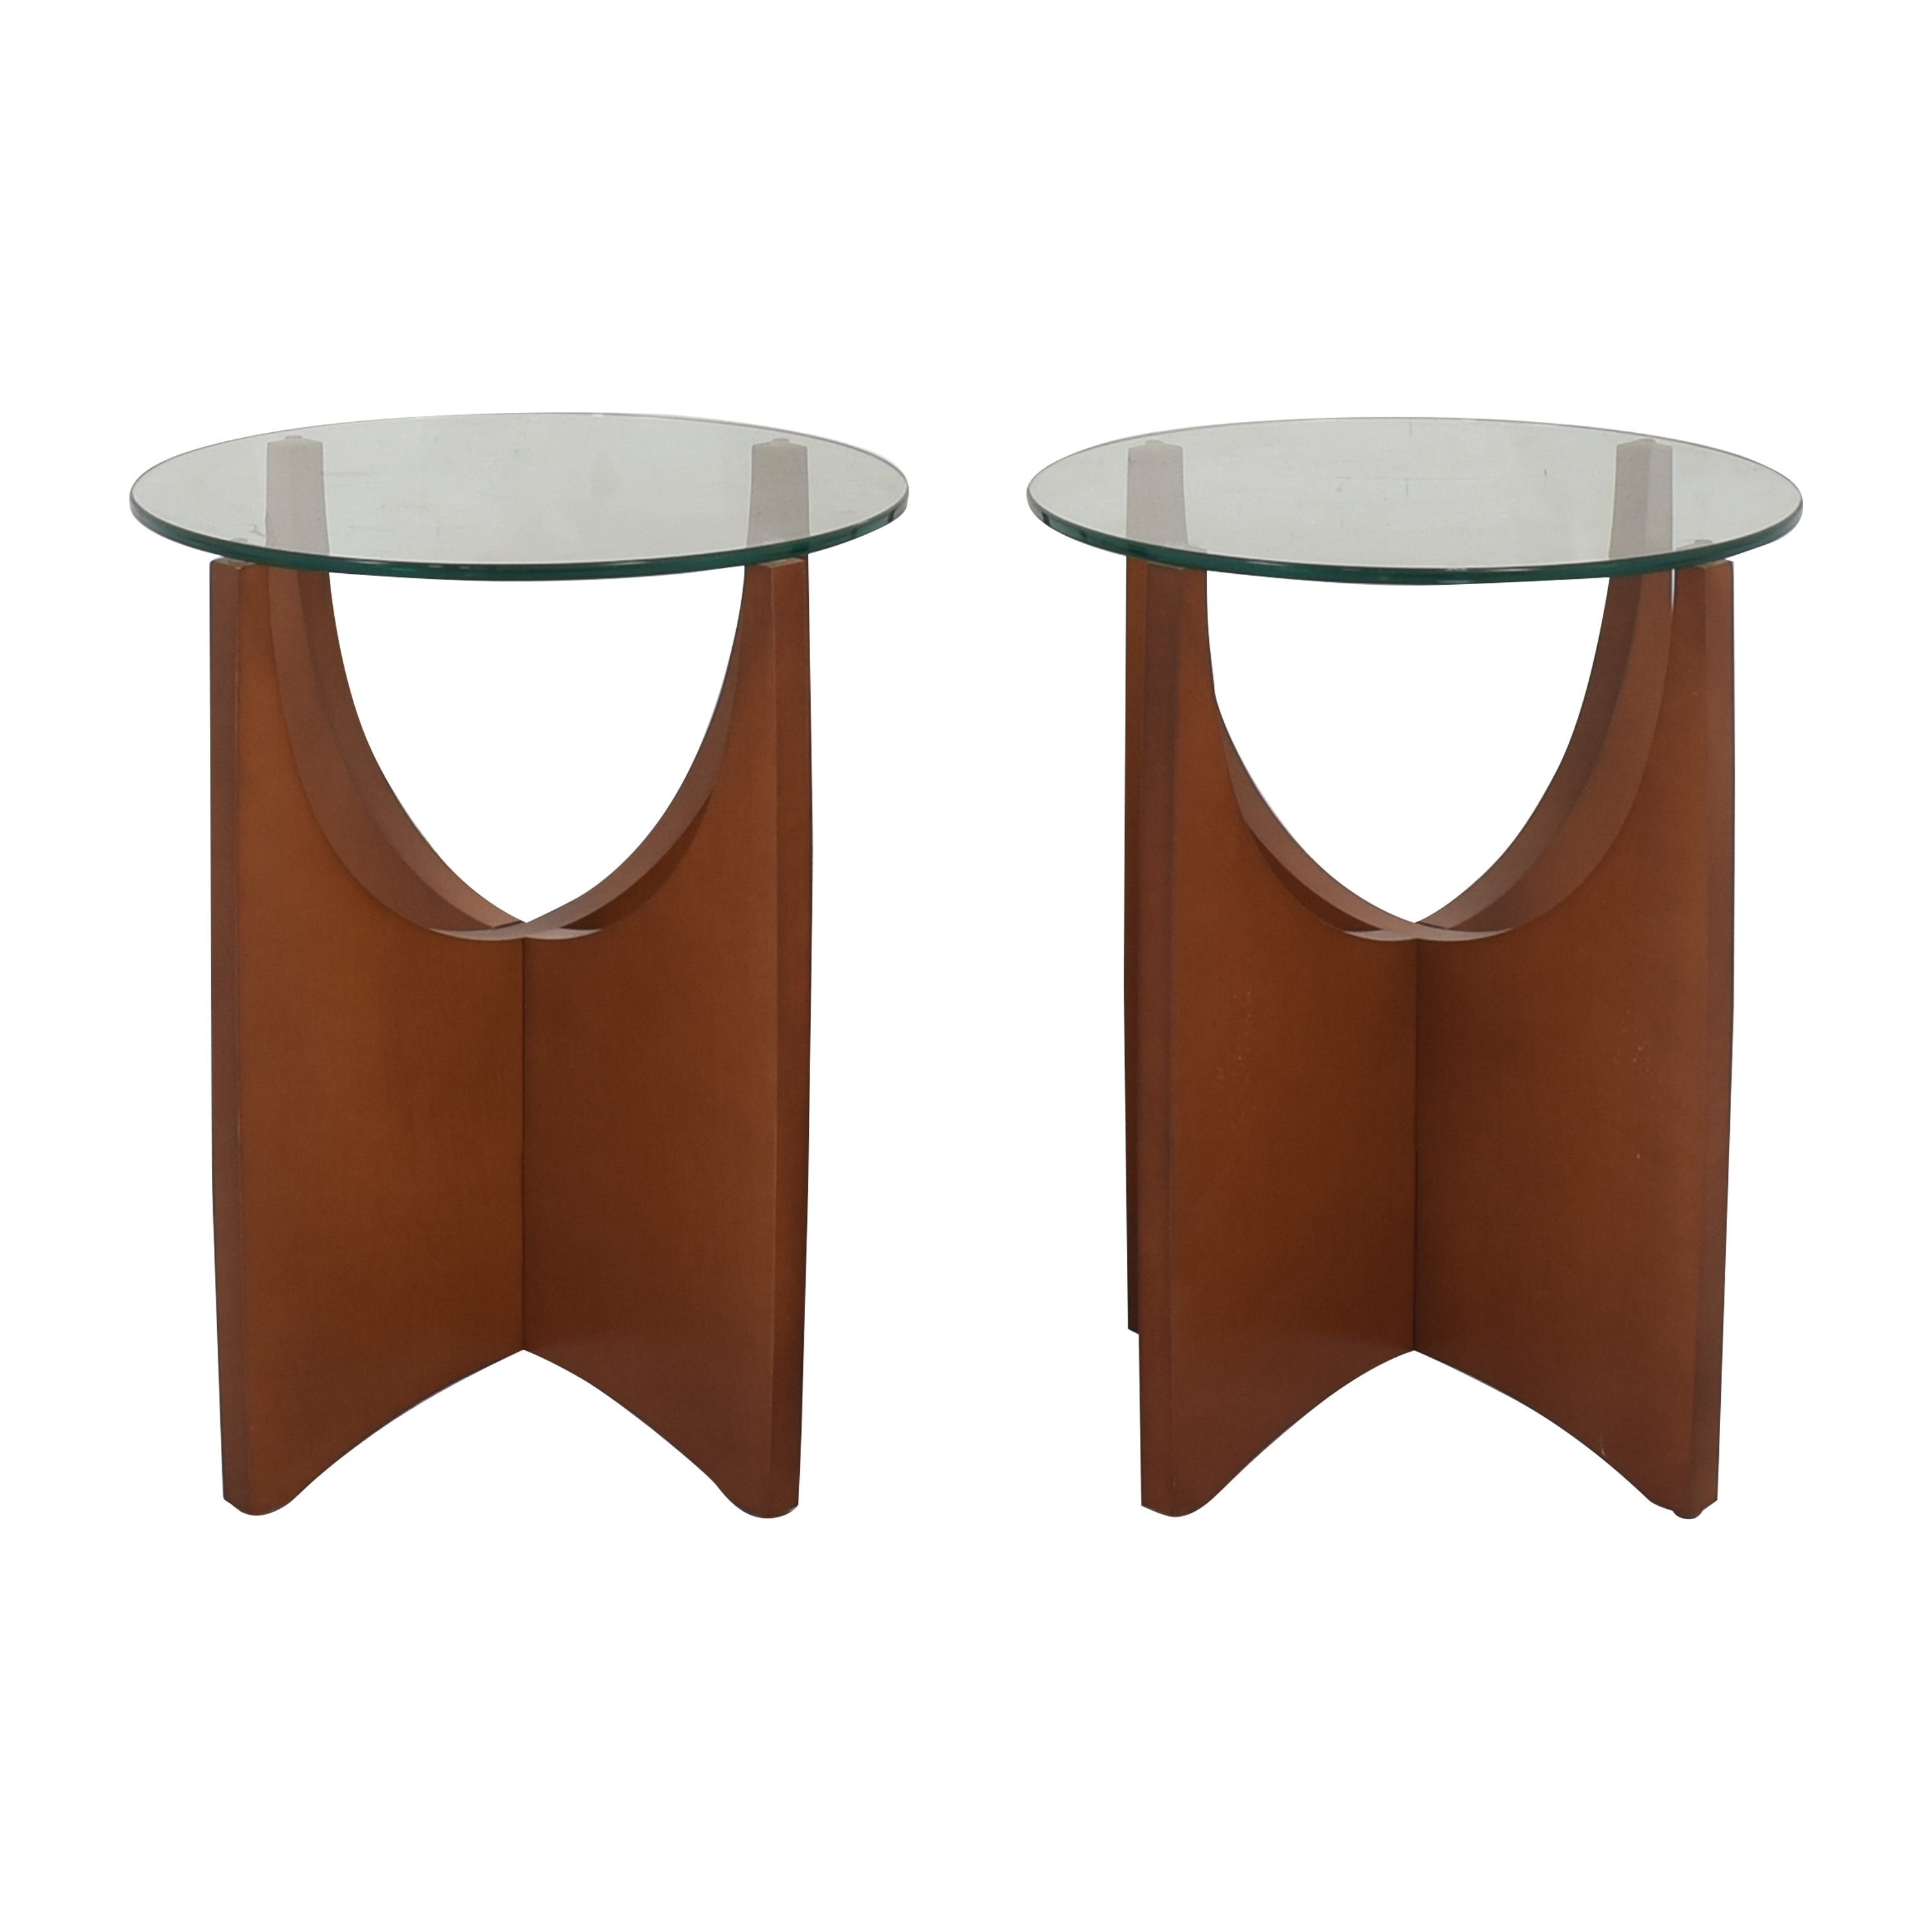 Steelcase Steelcase Turnstone Alight End Tables for sale